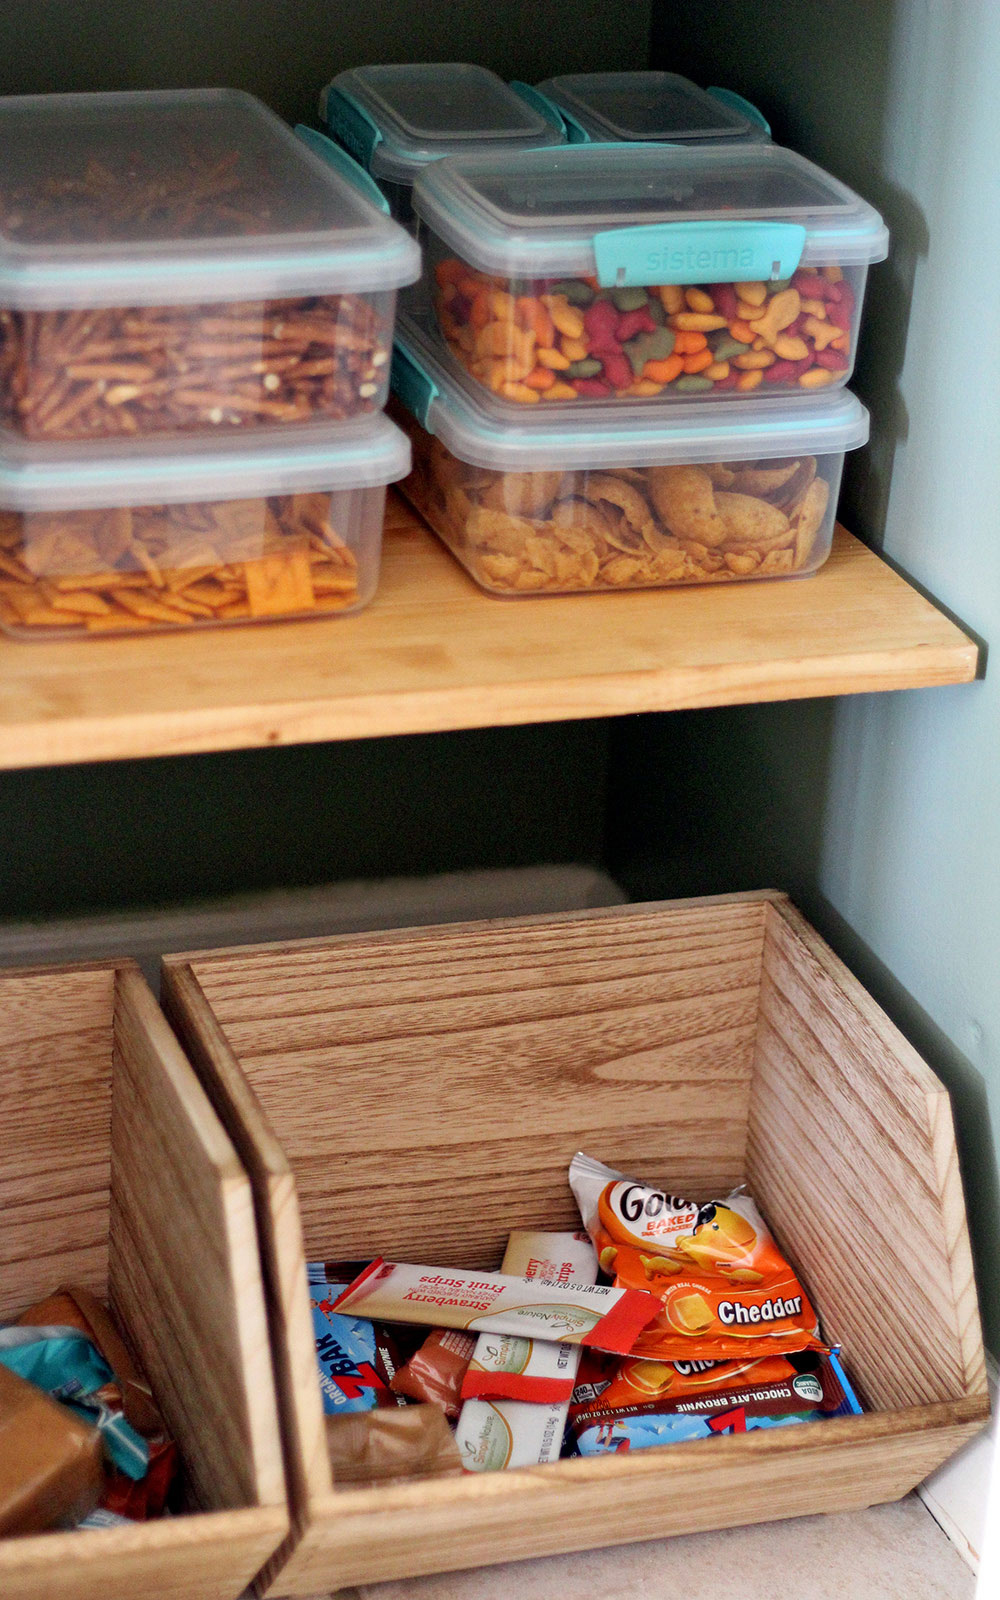 use containers that stack   practical tips for storing more in a kitchen pantry